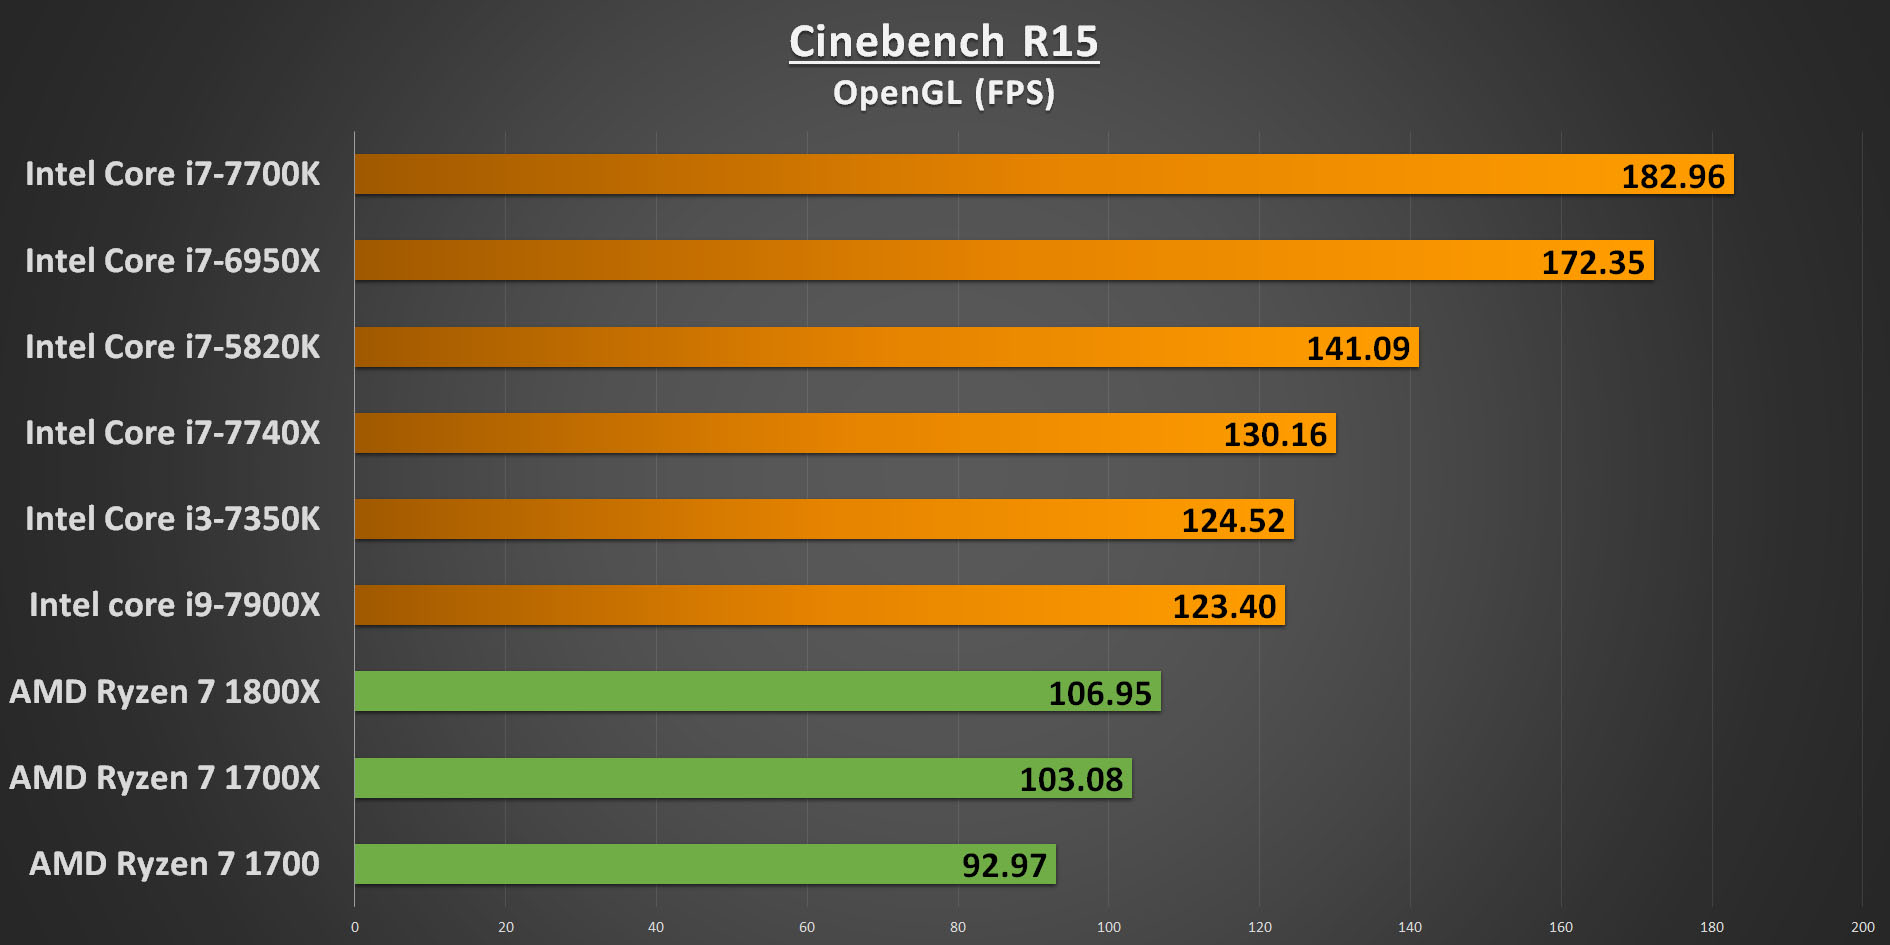 Ryzen 7 Cinebench R15 OpenGL